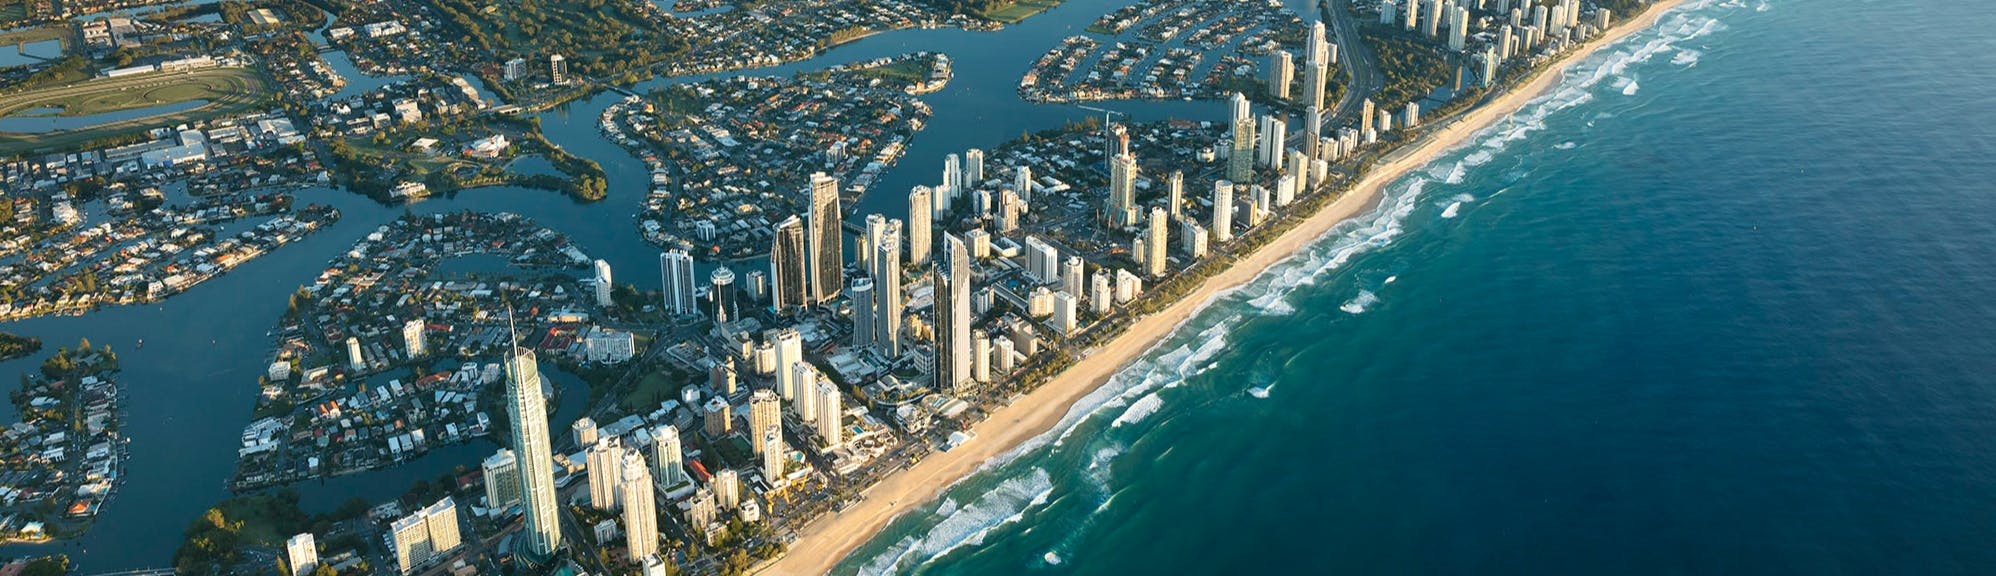 City of Gold Coast skyline from the air